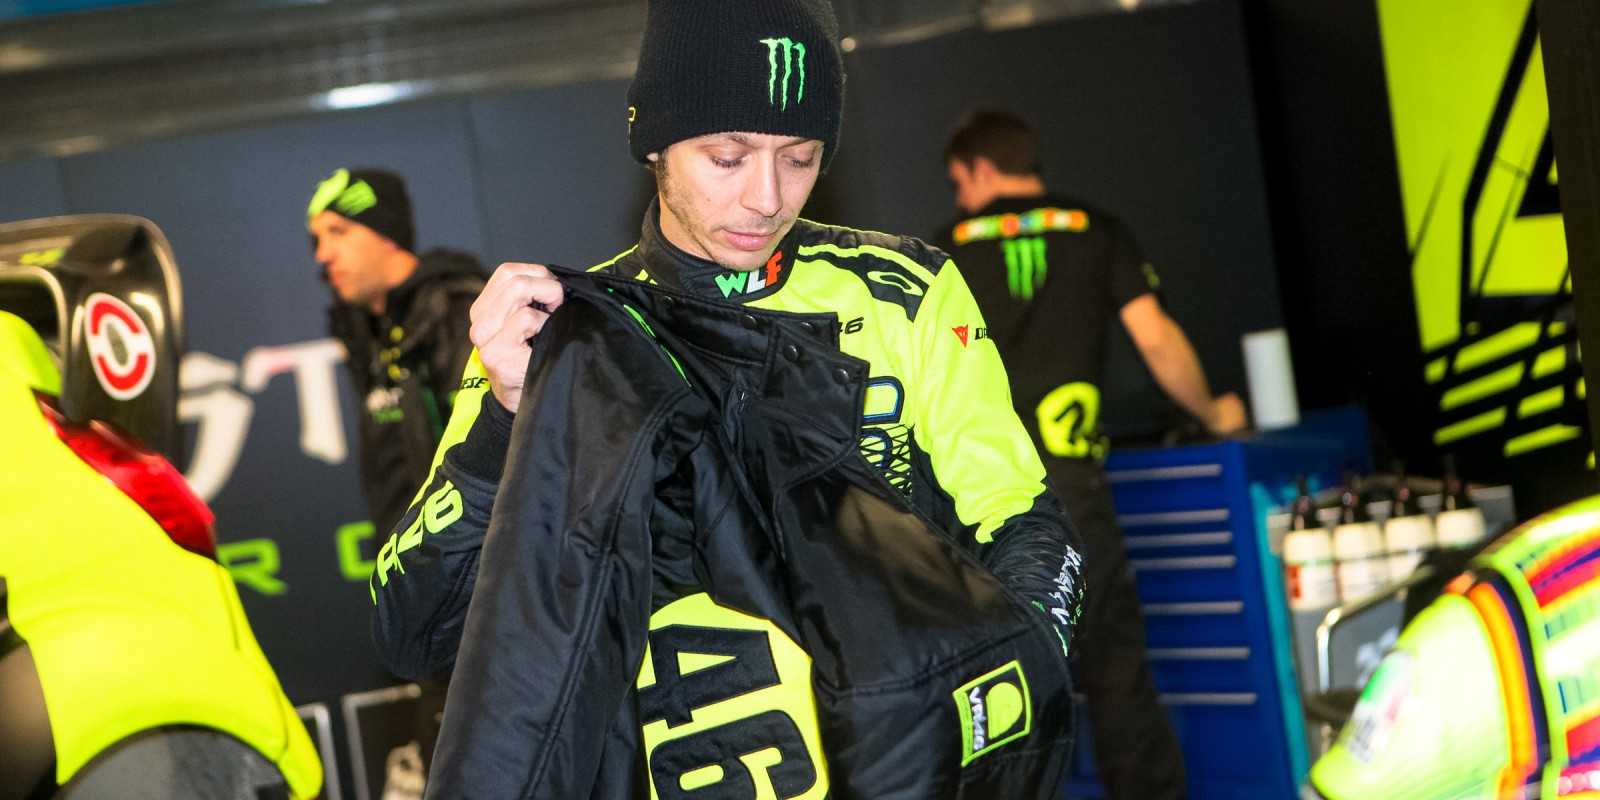 Vale after the race